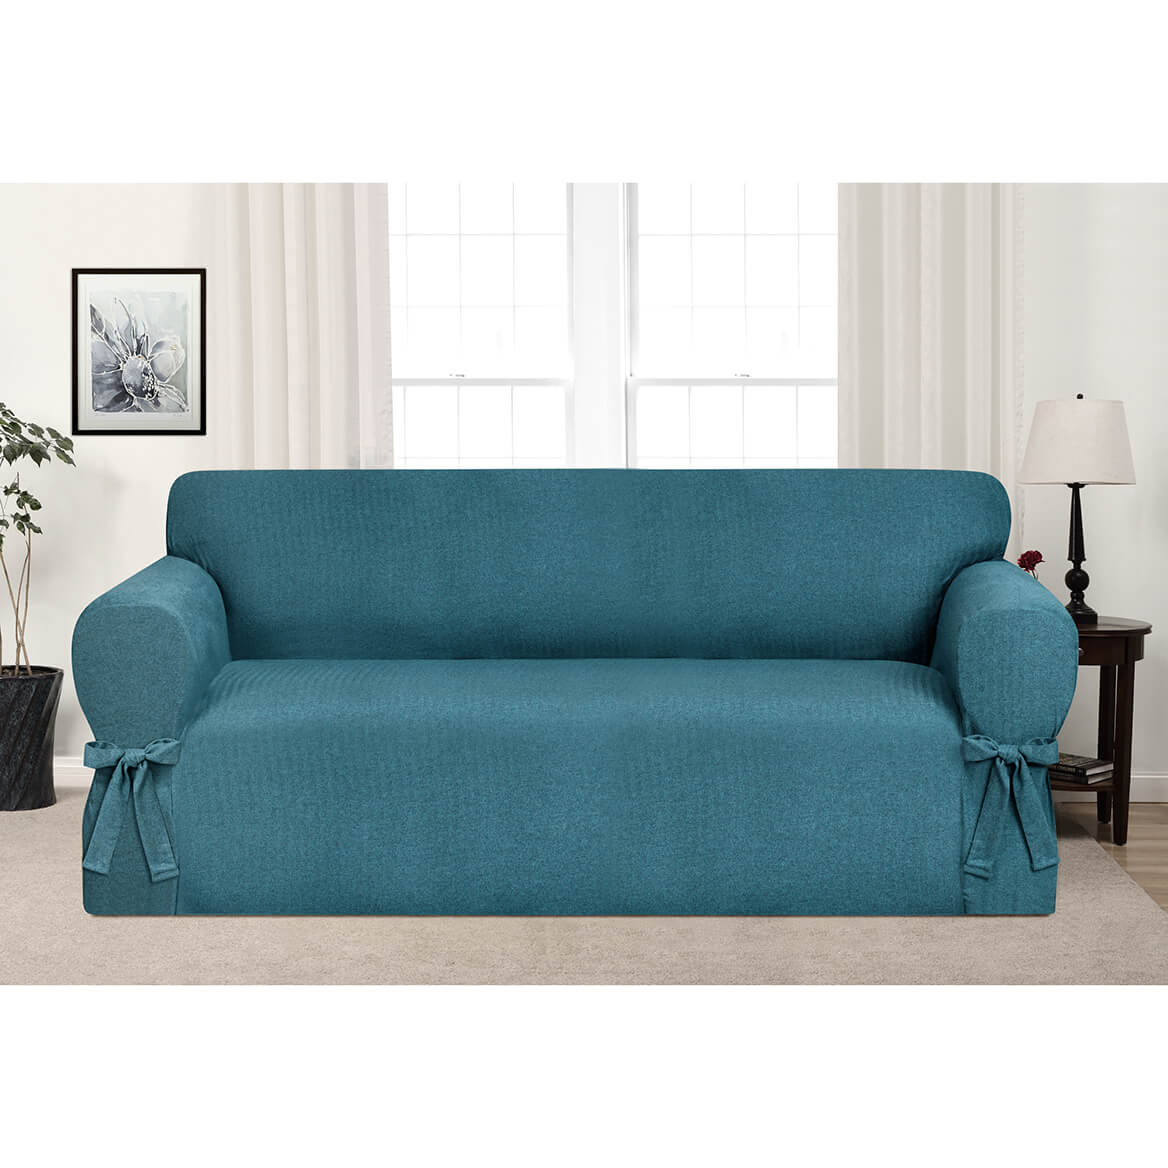 Kathy Ireland Evening Flannel Sofa Slipcover-364172